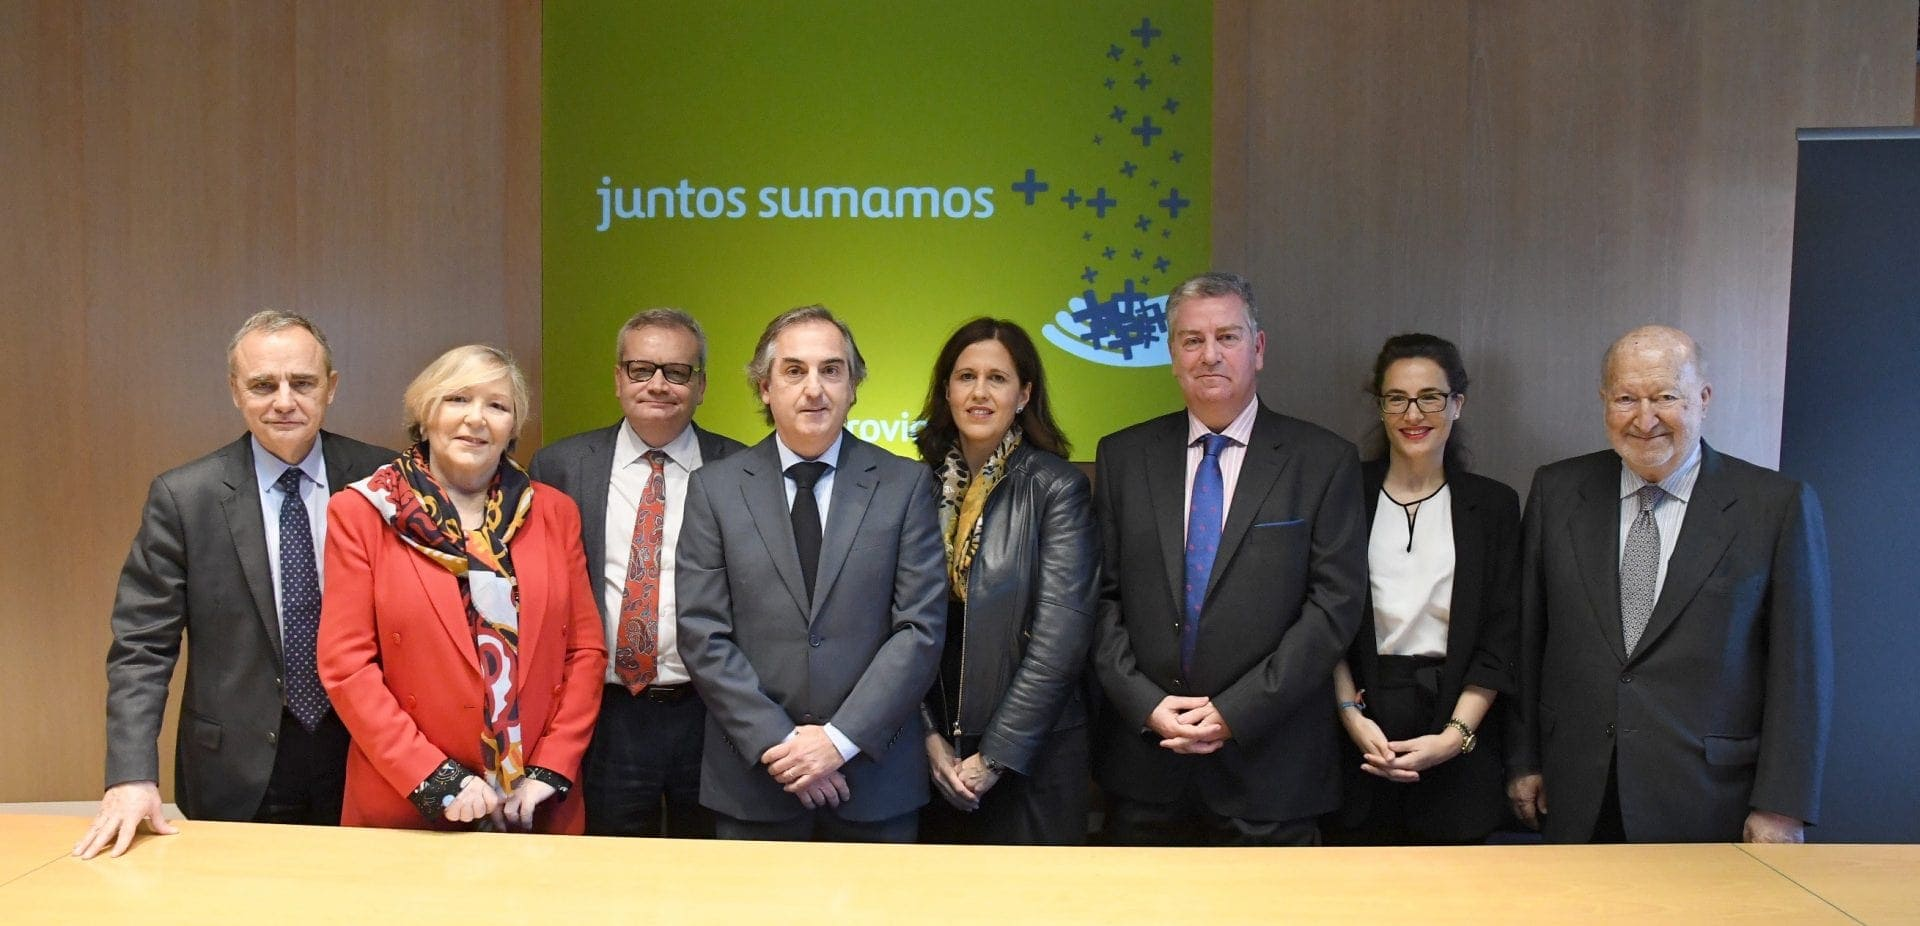 Social projects stronger together ferrovial